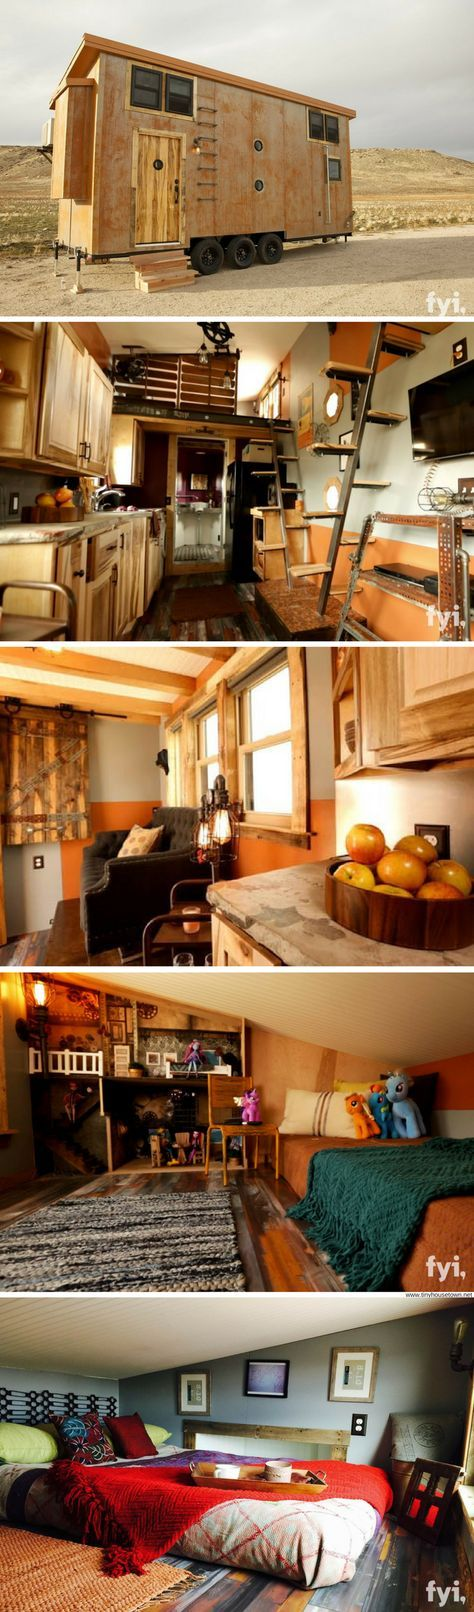 The Steampunk Adventure House (340 sq ft